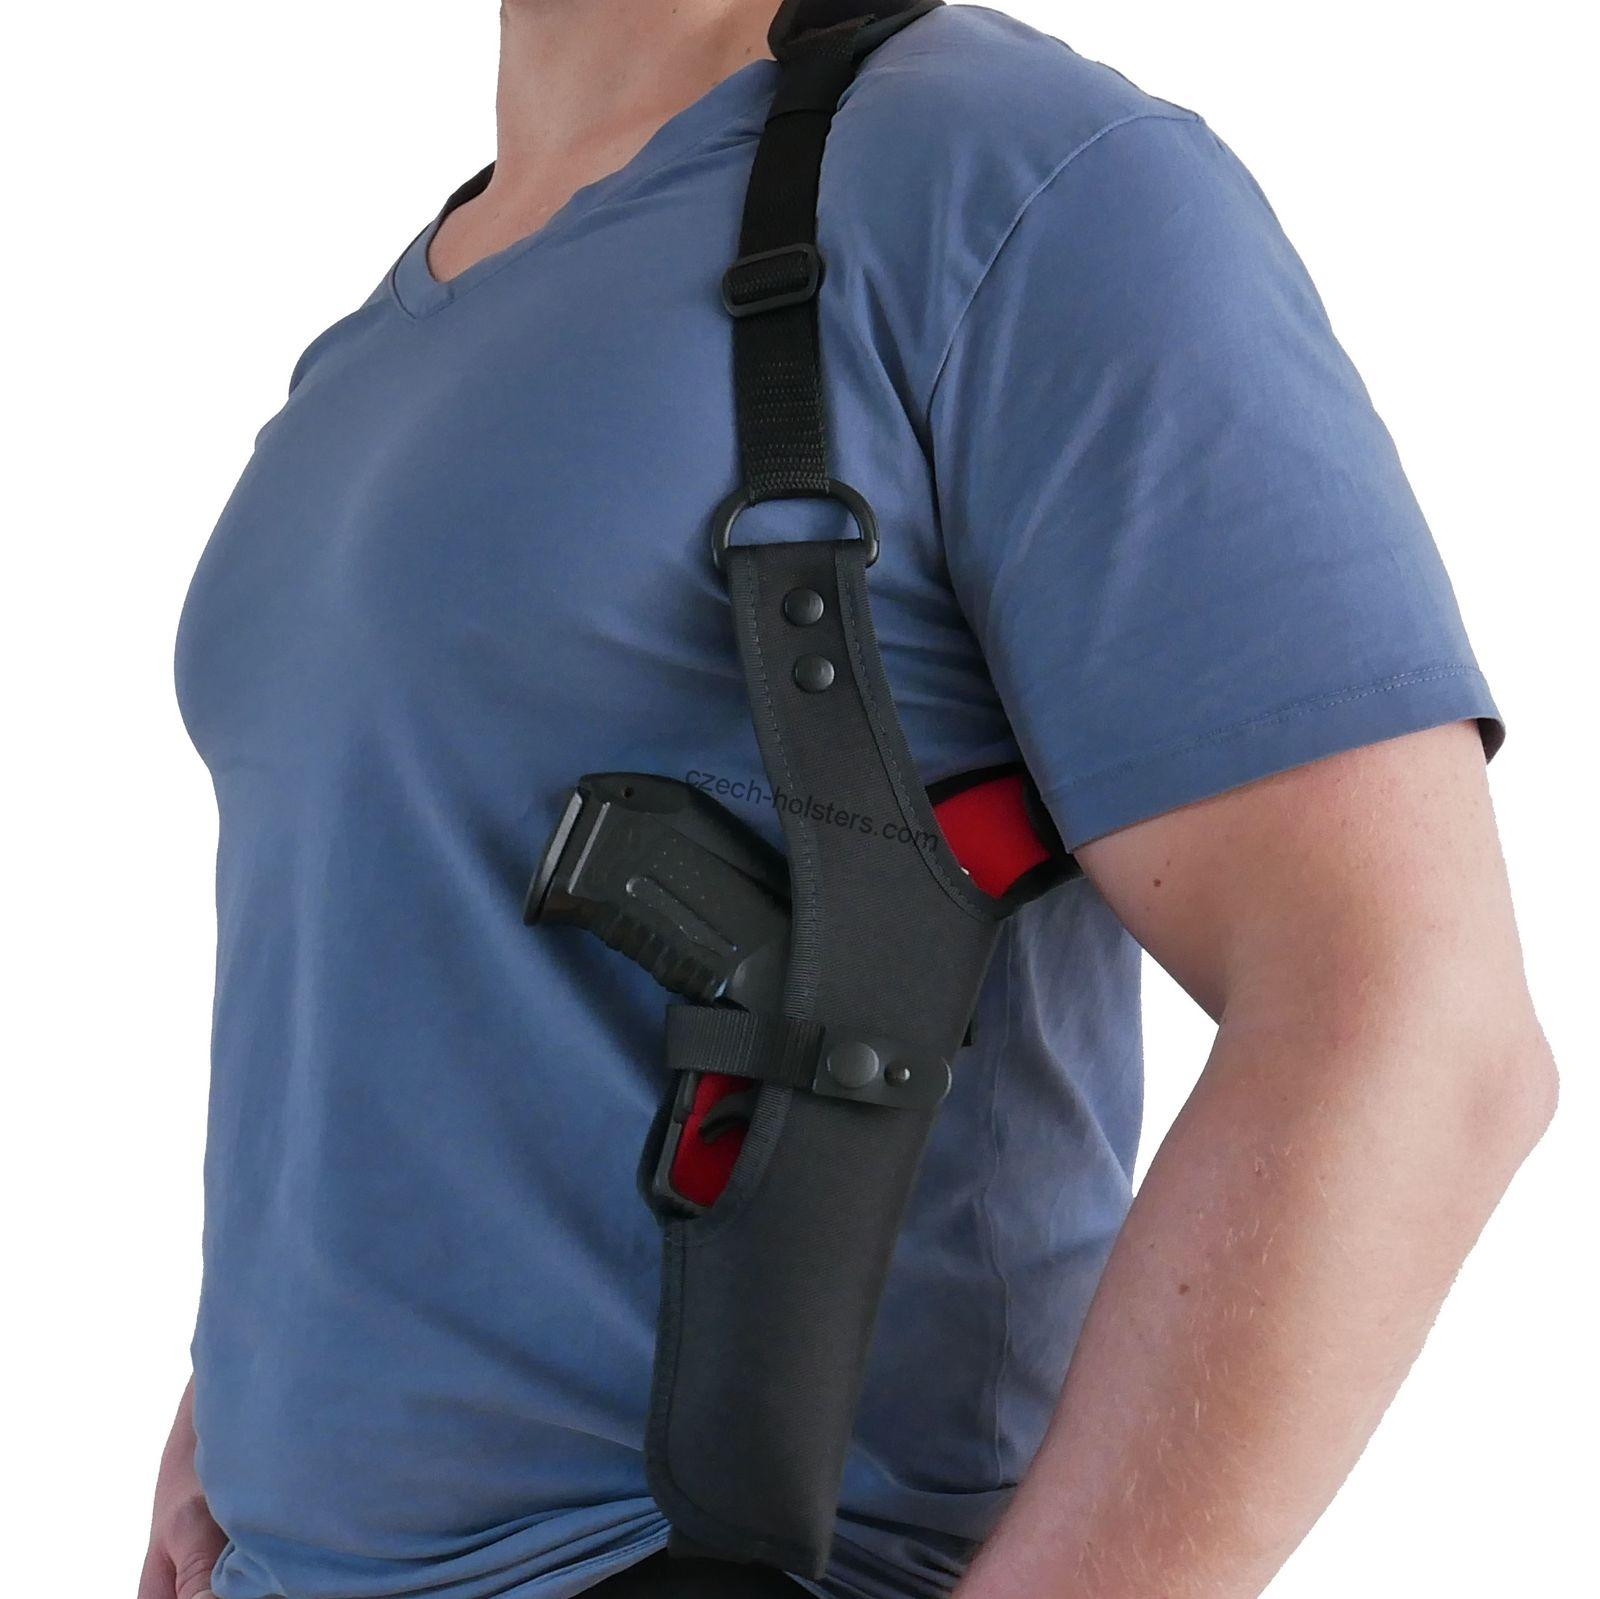 CZ Universal Size Shoulder Premium Vertically Holster - One Side